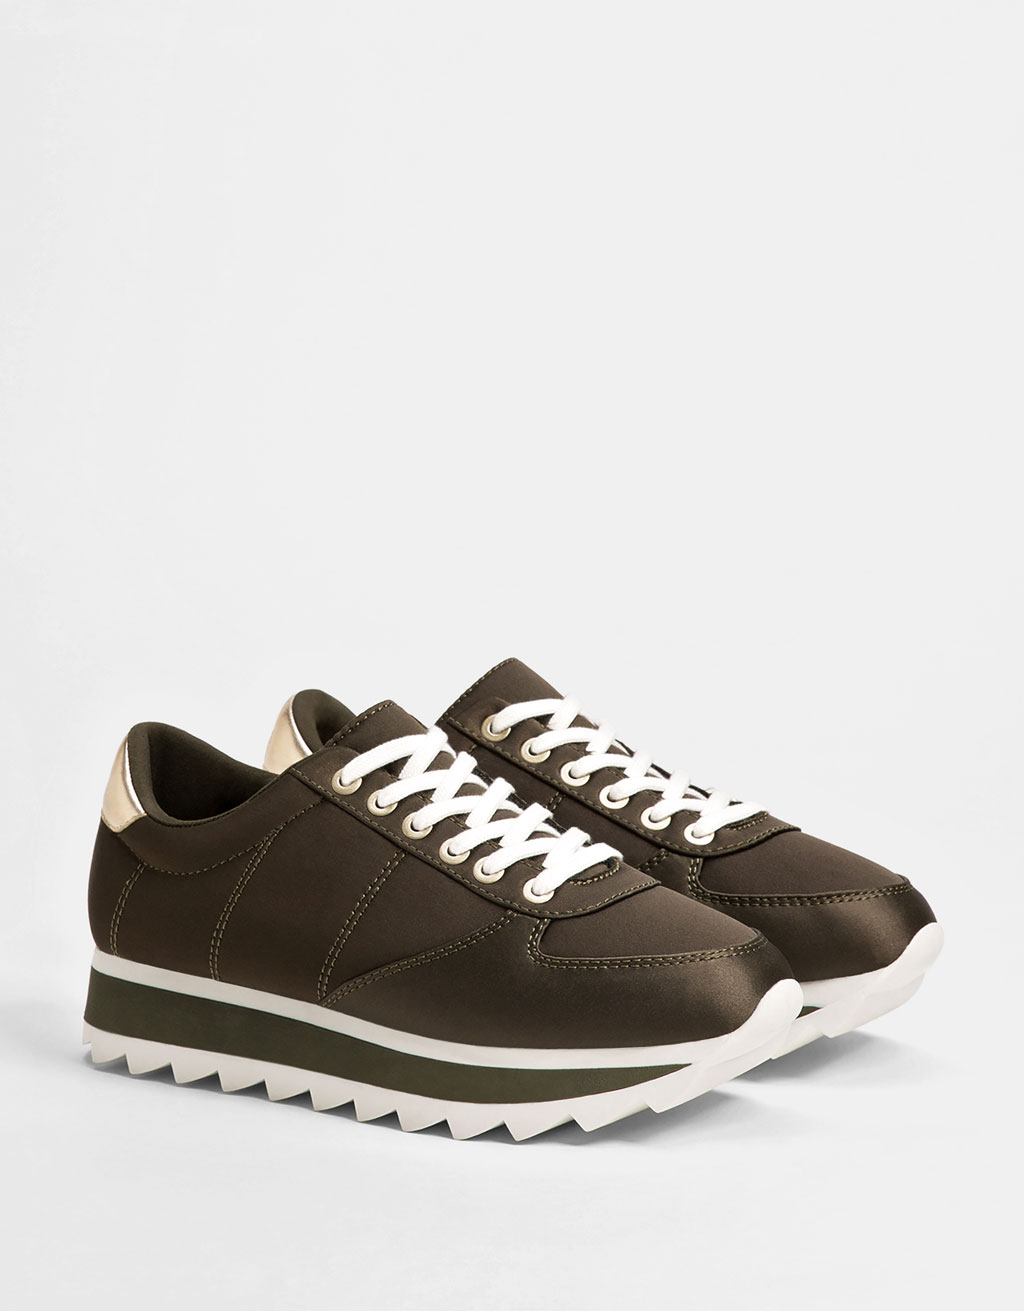 Satin sneakers with metallic detail and two-tone sole